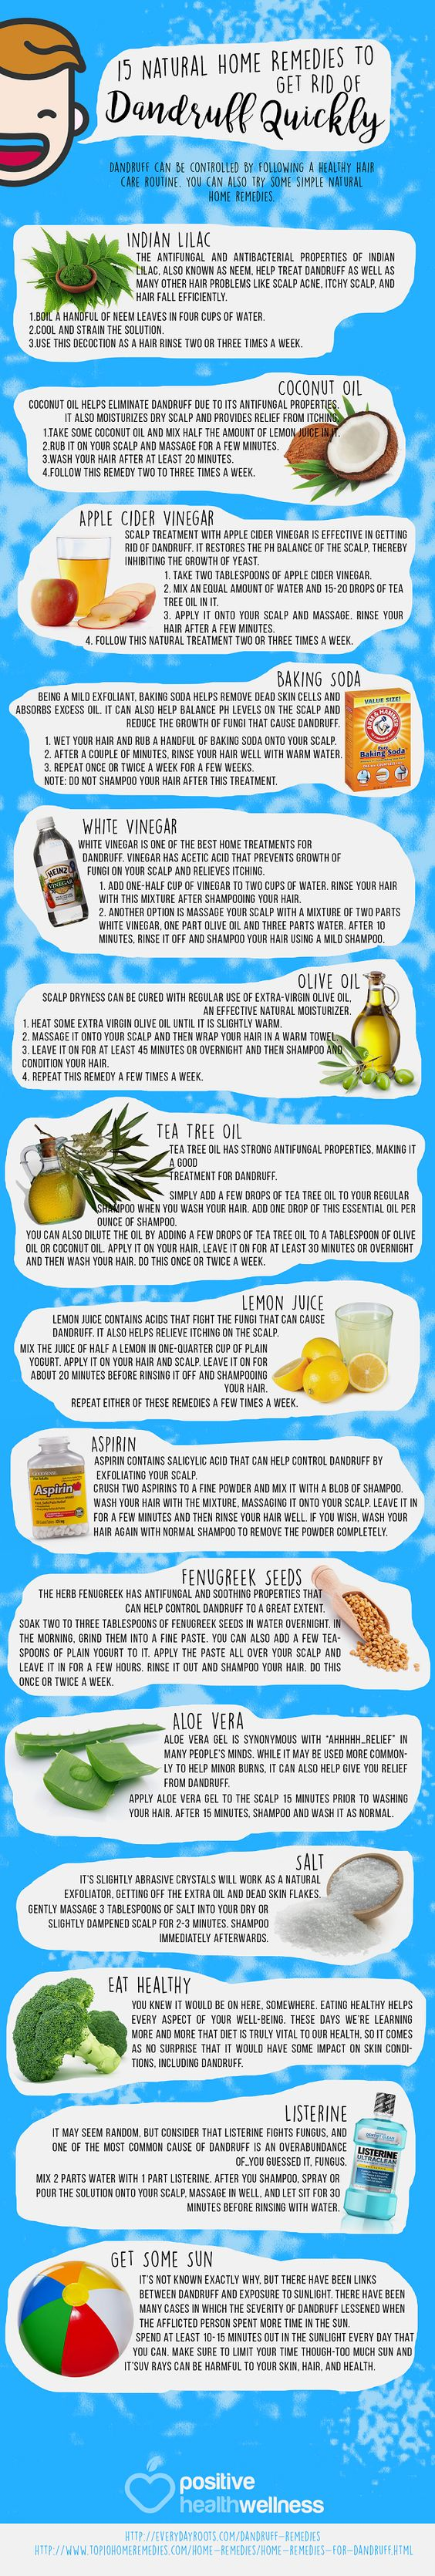 15 Natural Home Remedies To Get Rid Of Dandruff Quickly Positive Health Diy Hair Care Home Remedies For Dandruff Dandruff